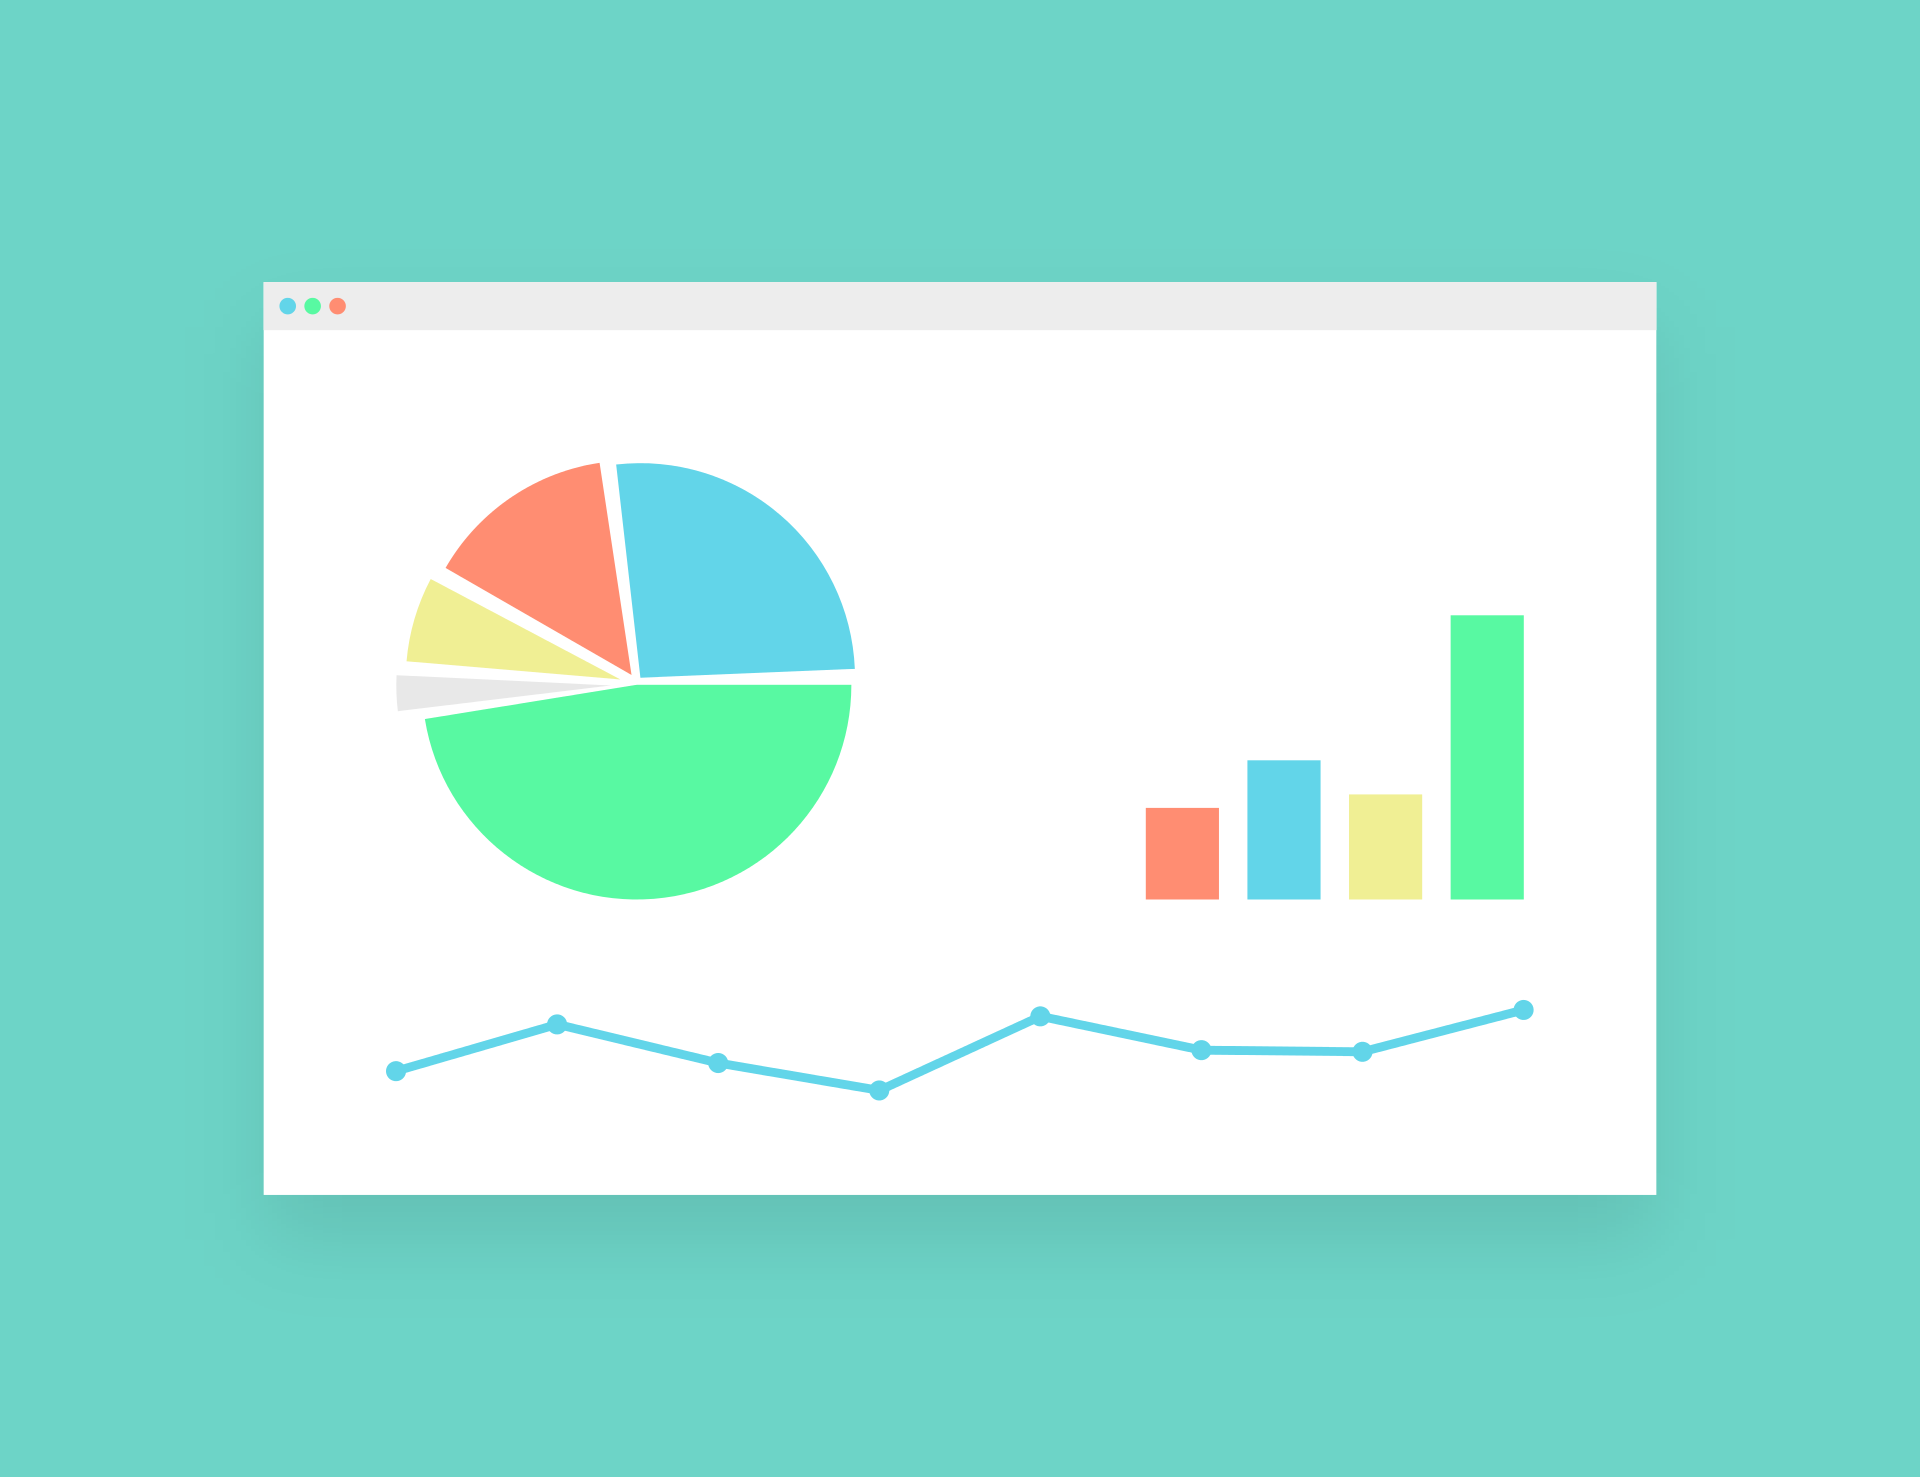 10 simple steps on how to make a pie chart in excel excel wall 10 simple steps on how to make a pie chart in excel nvjuhfo Gallery